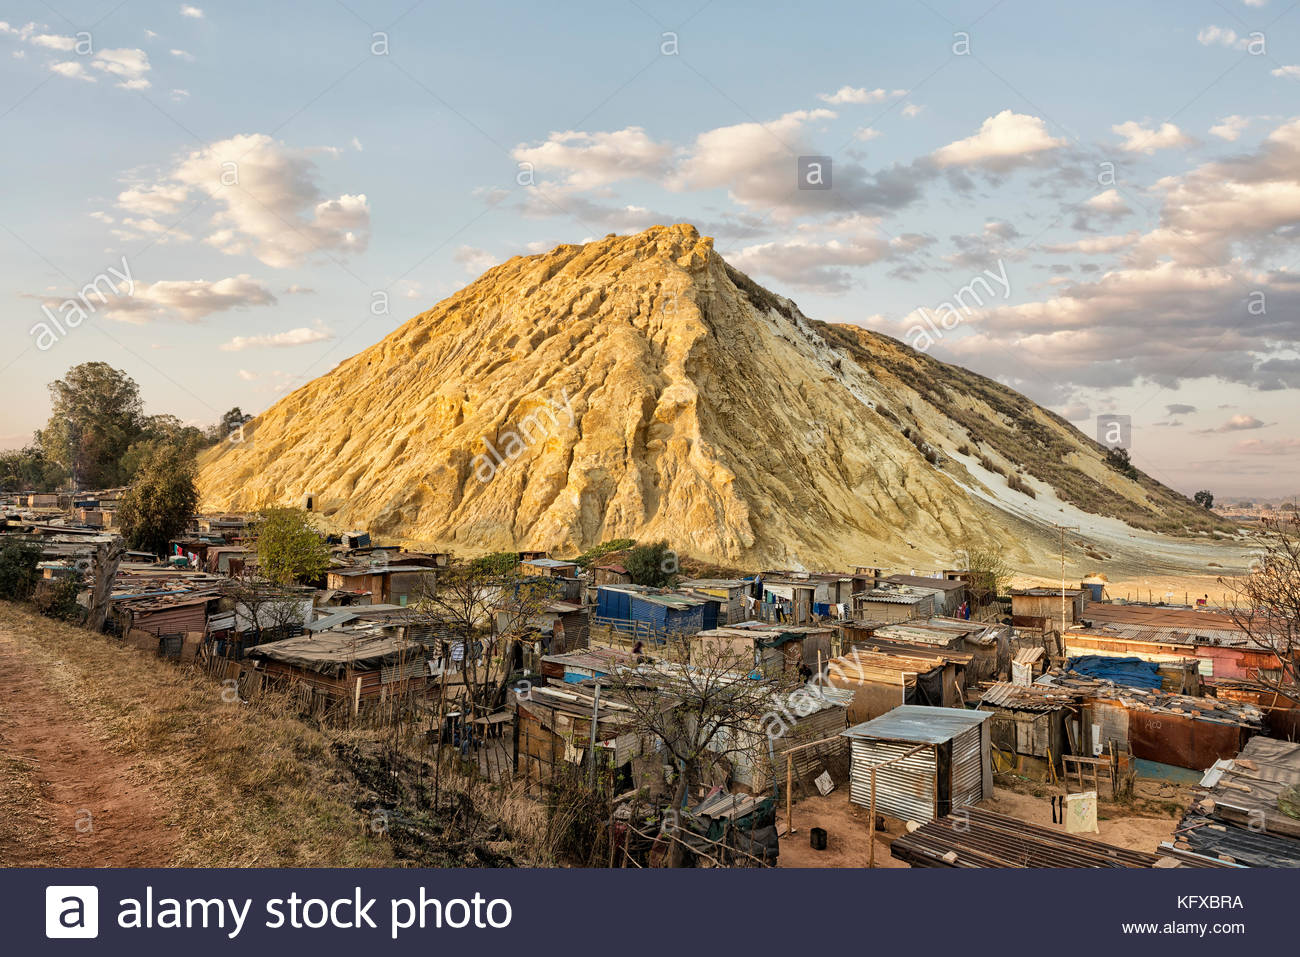 Shacks built in a mine dump, Johannesburg - Stock Image